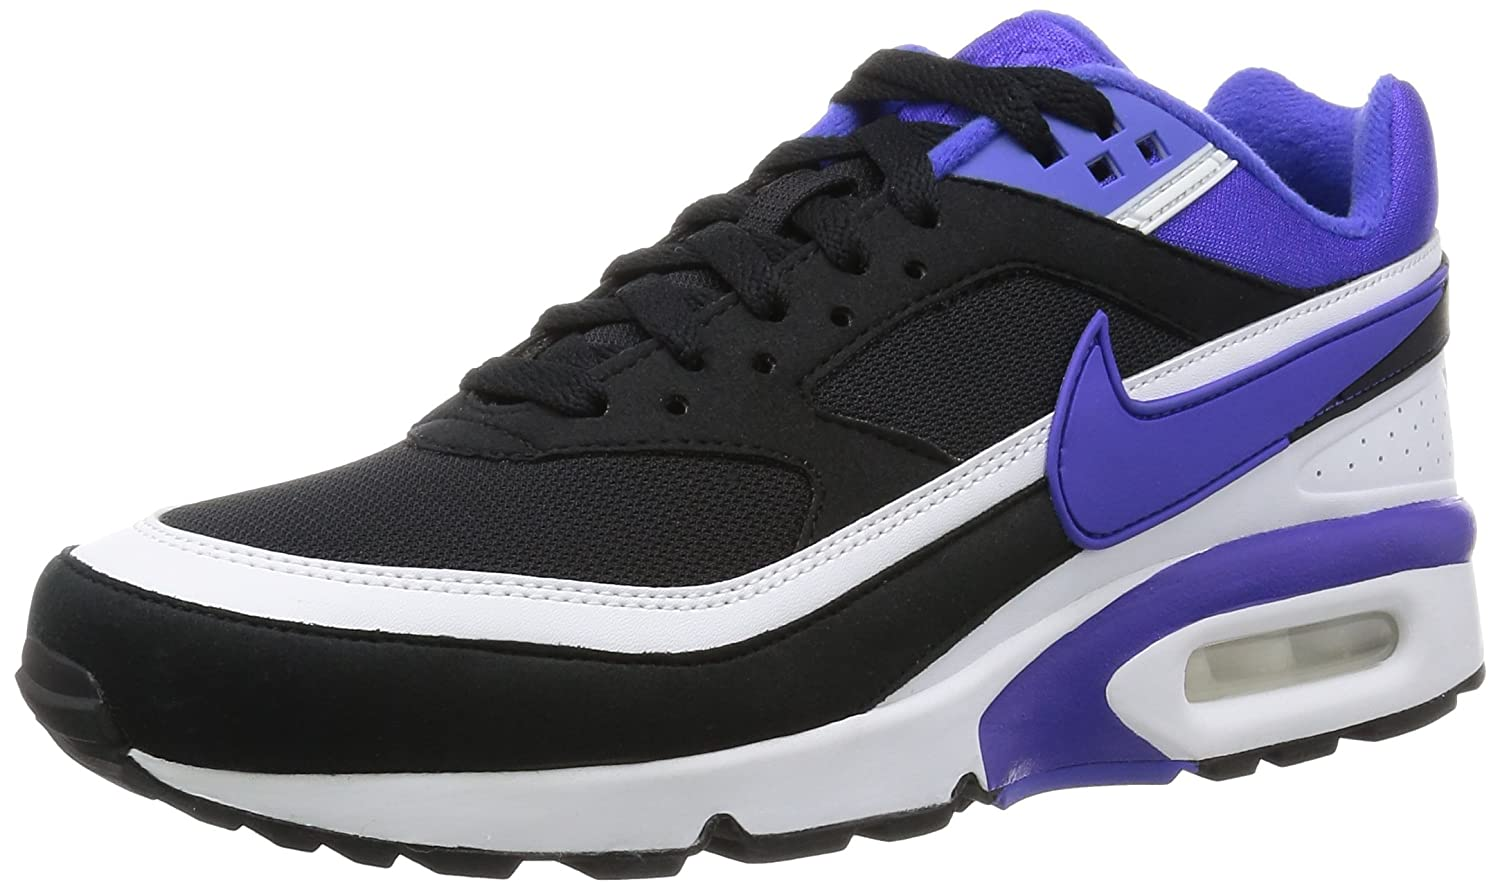 043cb370d6 NIKE Mens Air Max BW OG Running Shoes at Amazon Men's Clothing store: